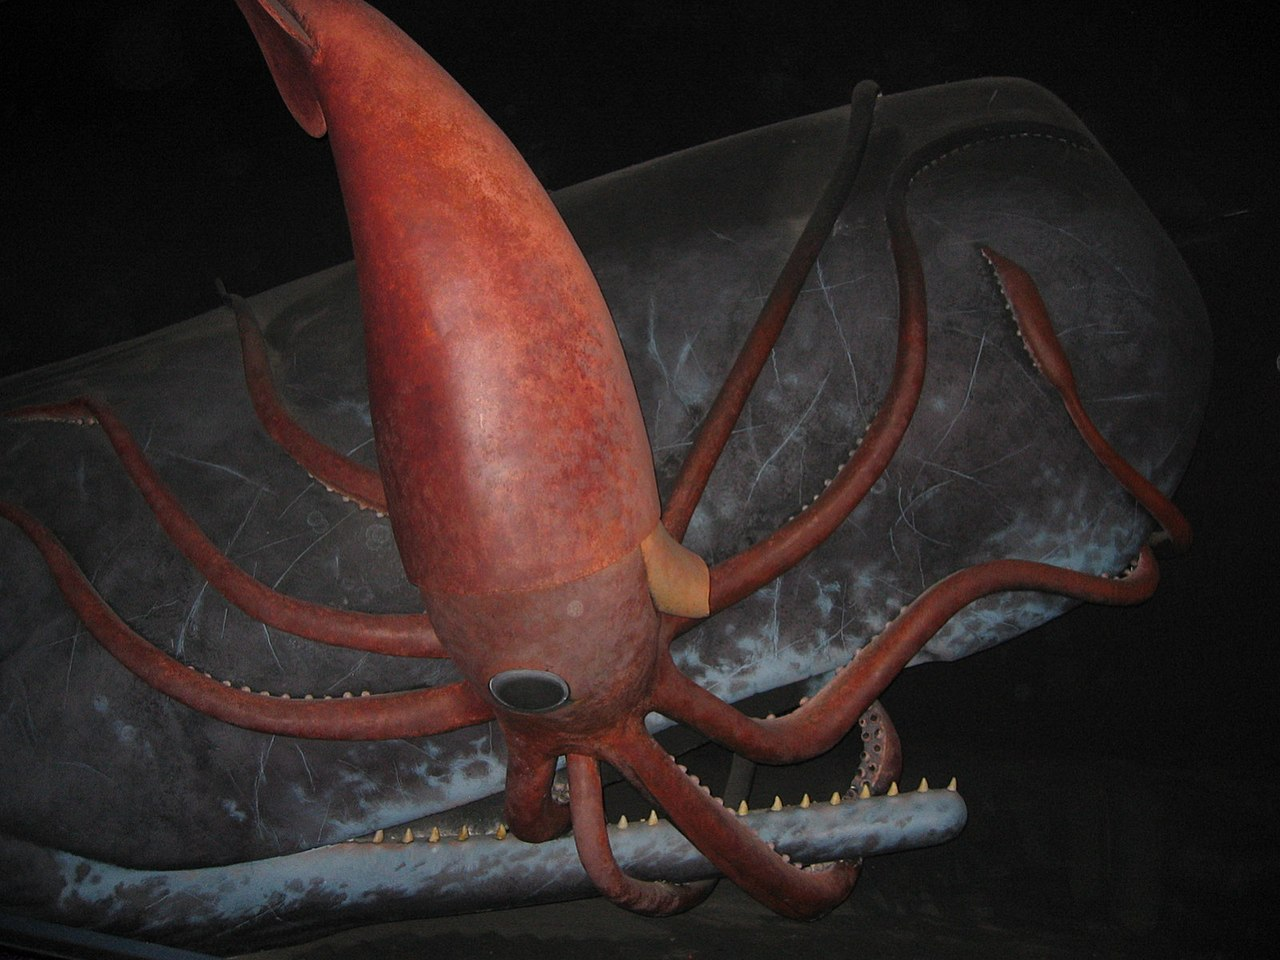 Giant squid and sperm whale engaged in a deep sea struggle